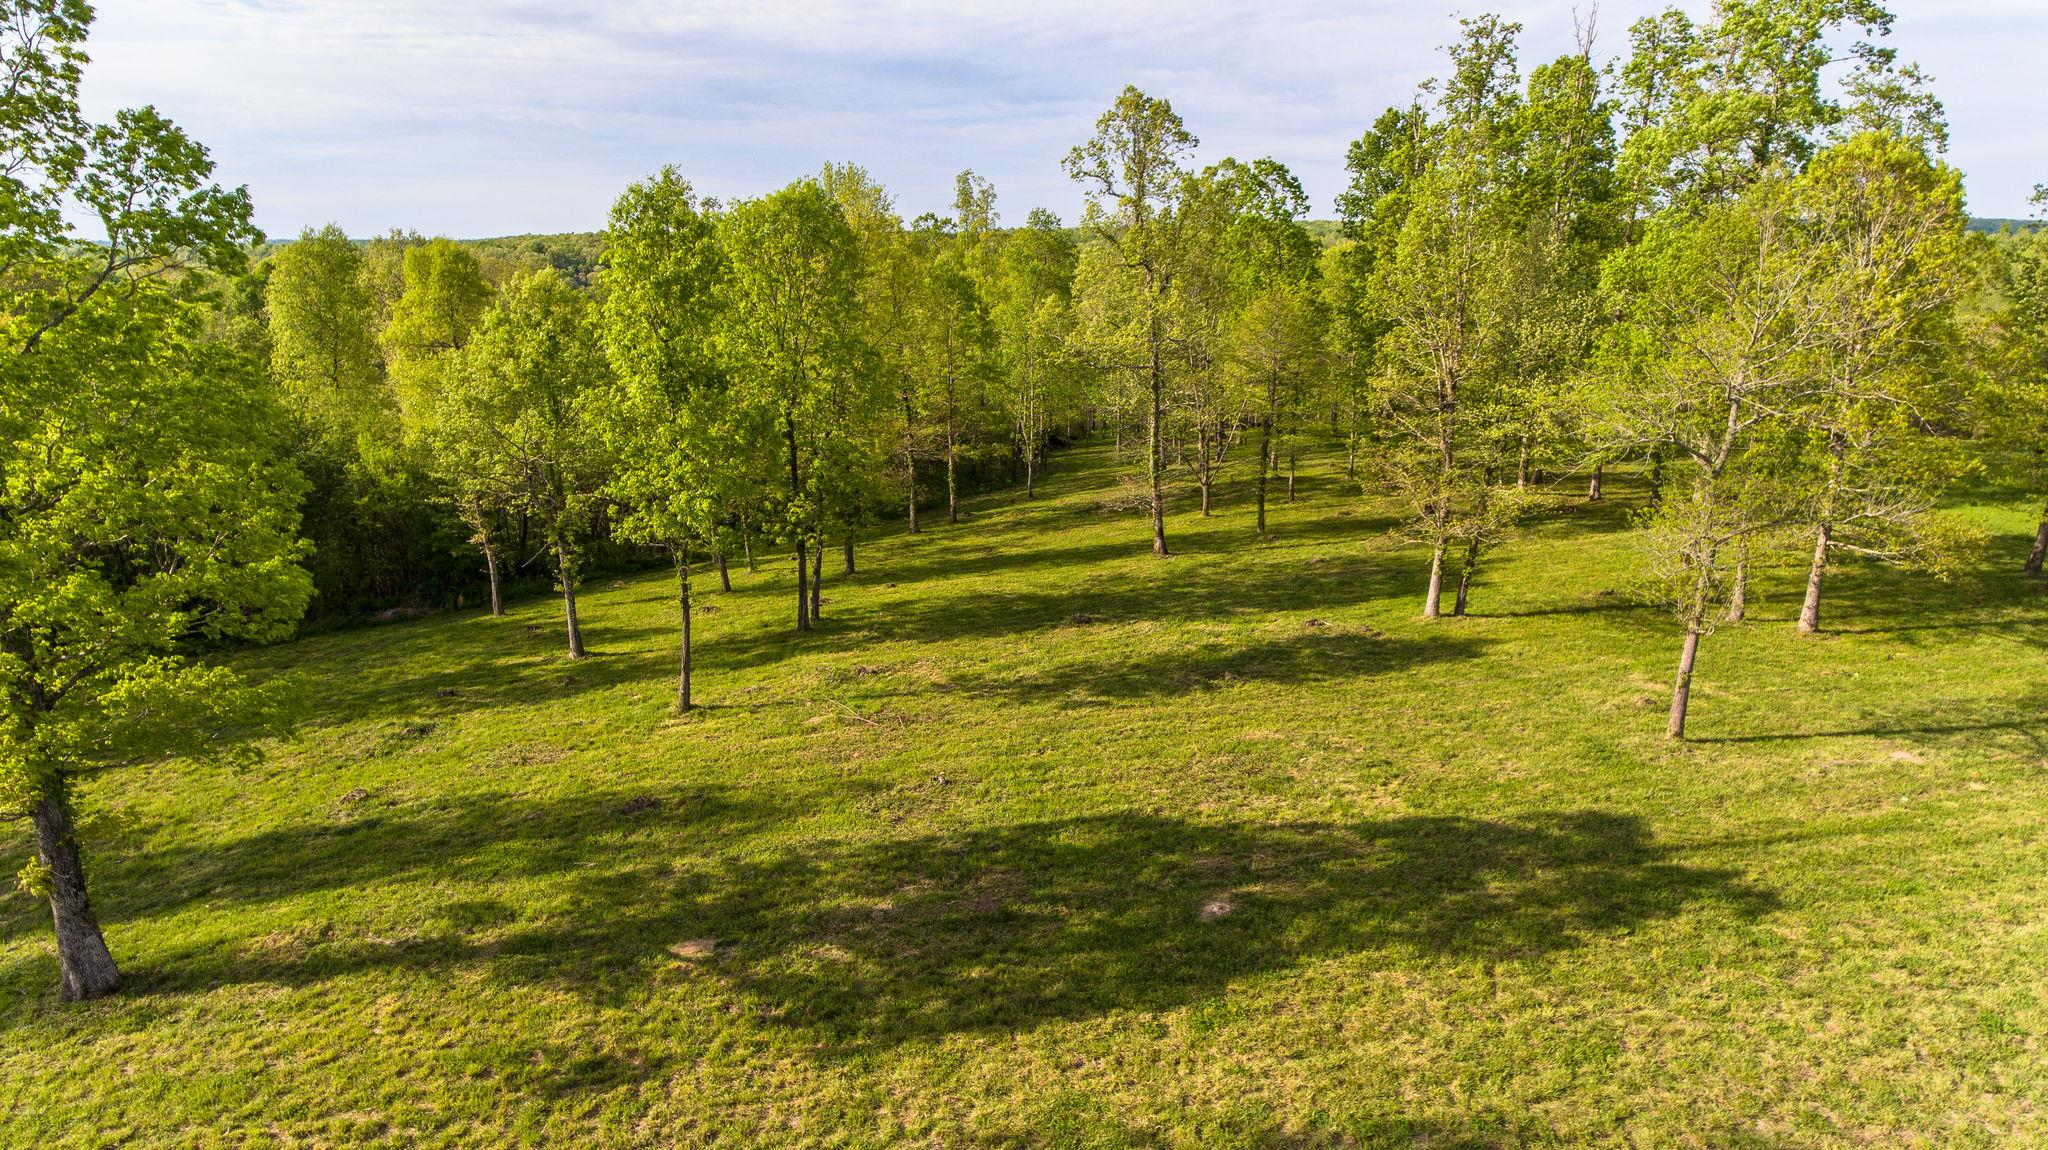 7850 W Lick Creek Rd, Primm Springs, TN 38476 - Primm Springs, TN real estate listing